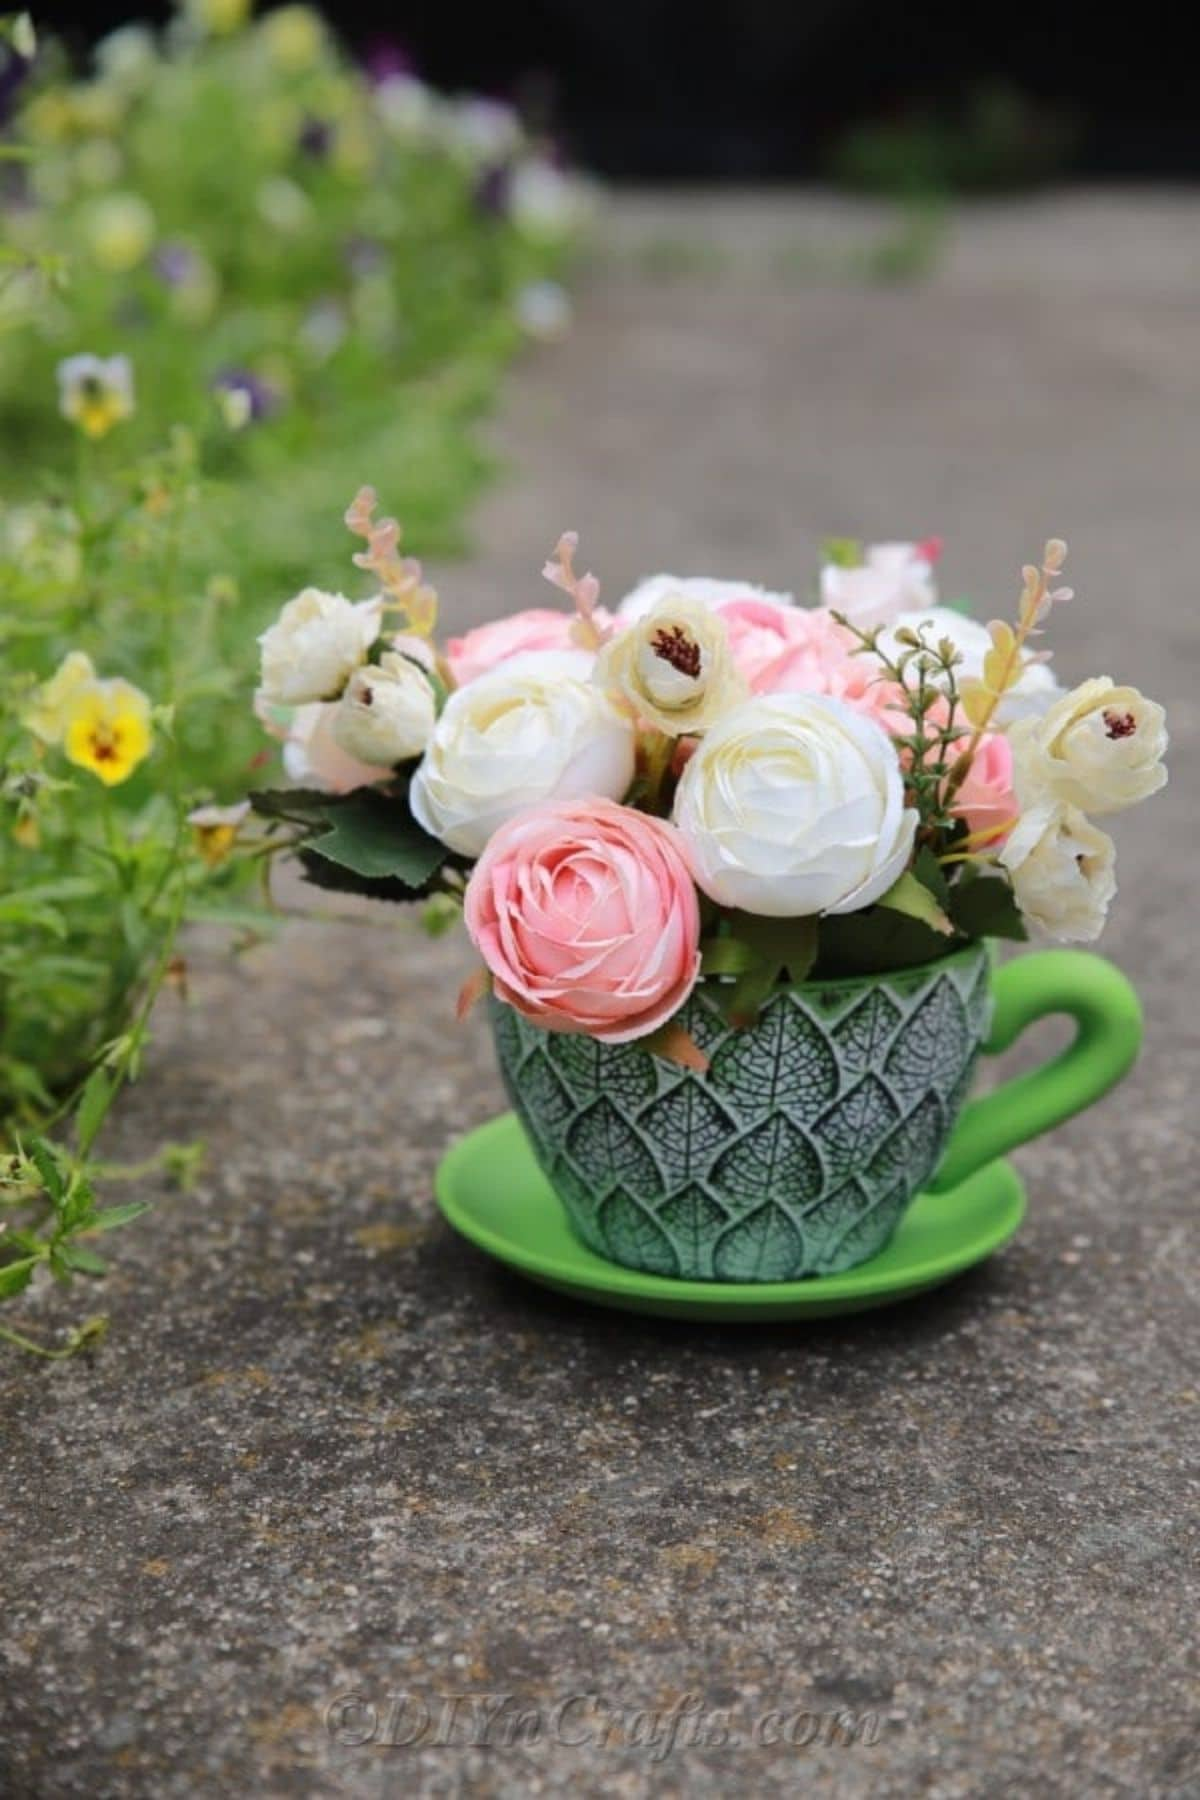 Teacup filled with flowers